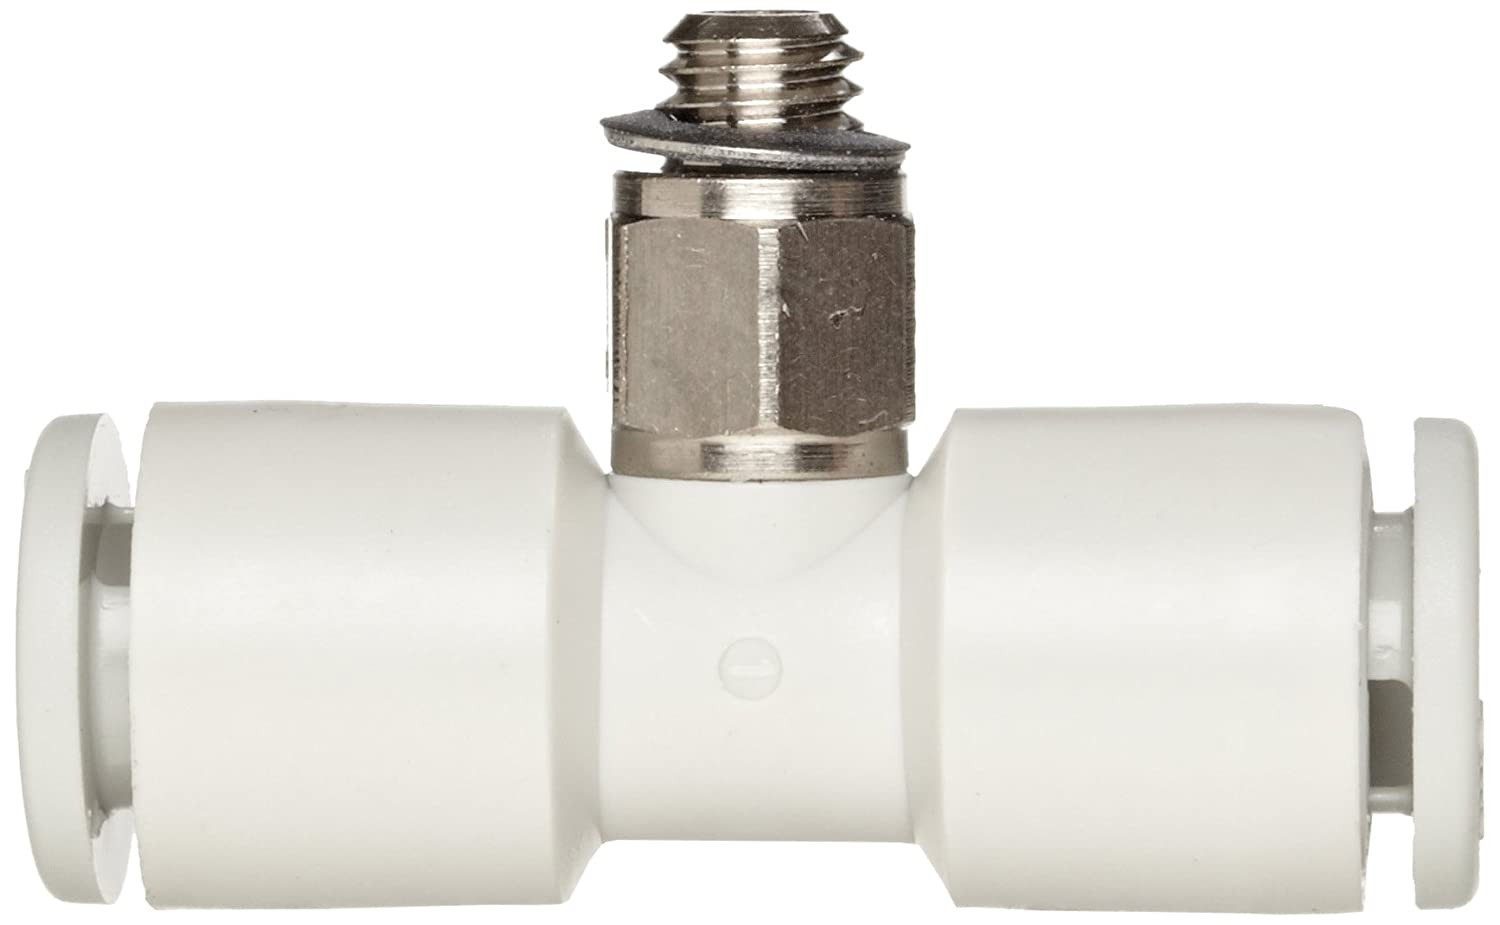 SMC KQ2T23-M5N PBT /& Nickel Plated Brass Push-to-Connect Tube Fitting 3.2 mm Tube OD x M5X0.8 Male x 3.2 mm Tube OD Branch Tee